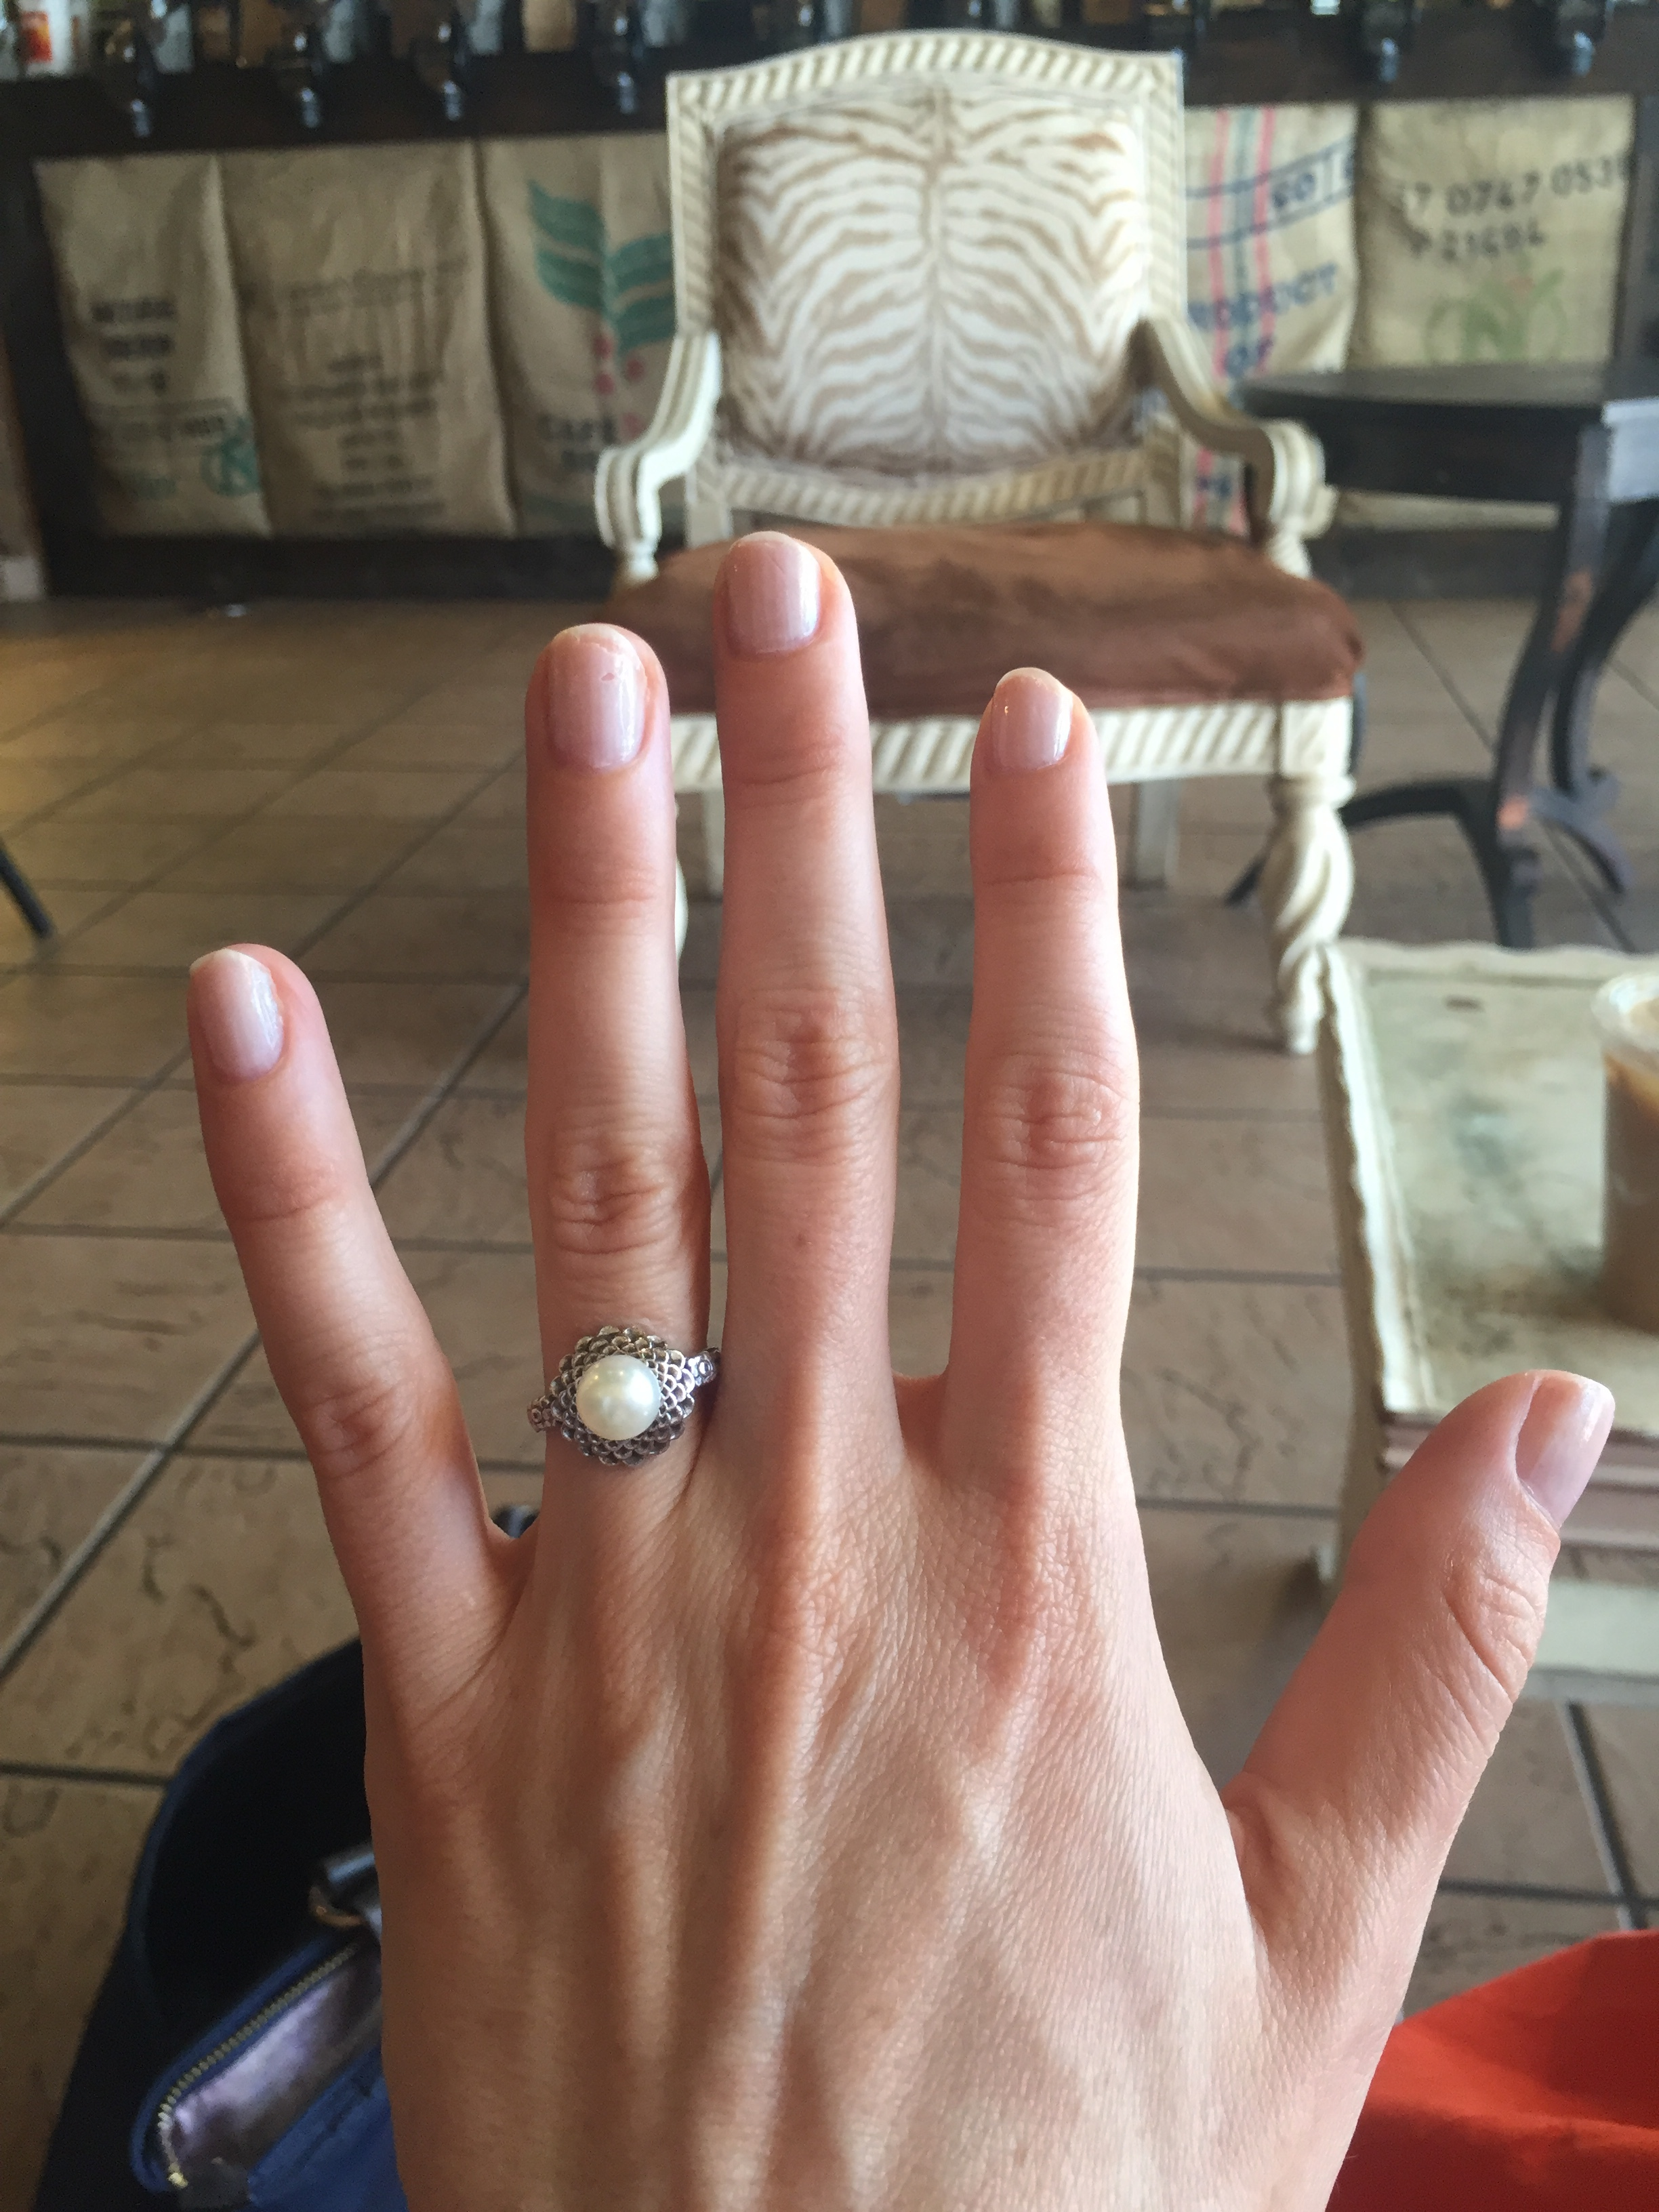 Unmanicured hands=further proof that he surprised me.